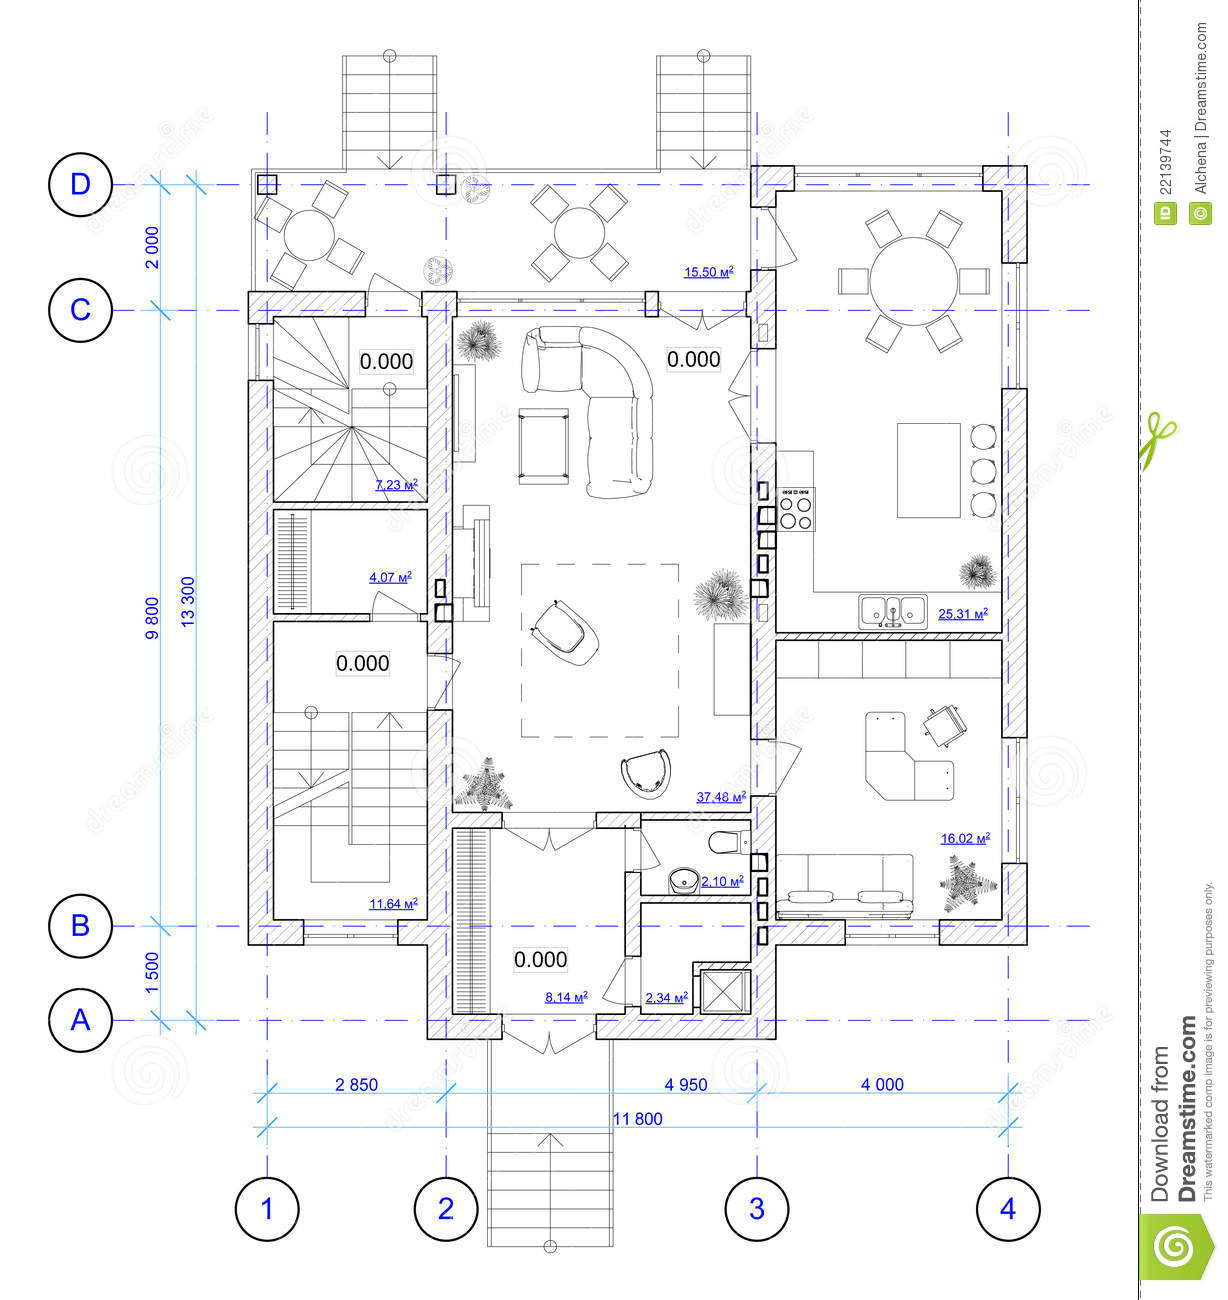 Https Www Dreamstime Com Stock Images Architectural Plan 1 Floor House Image22139744